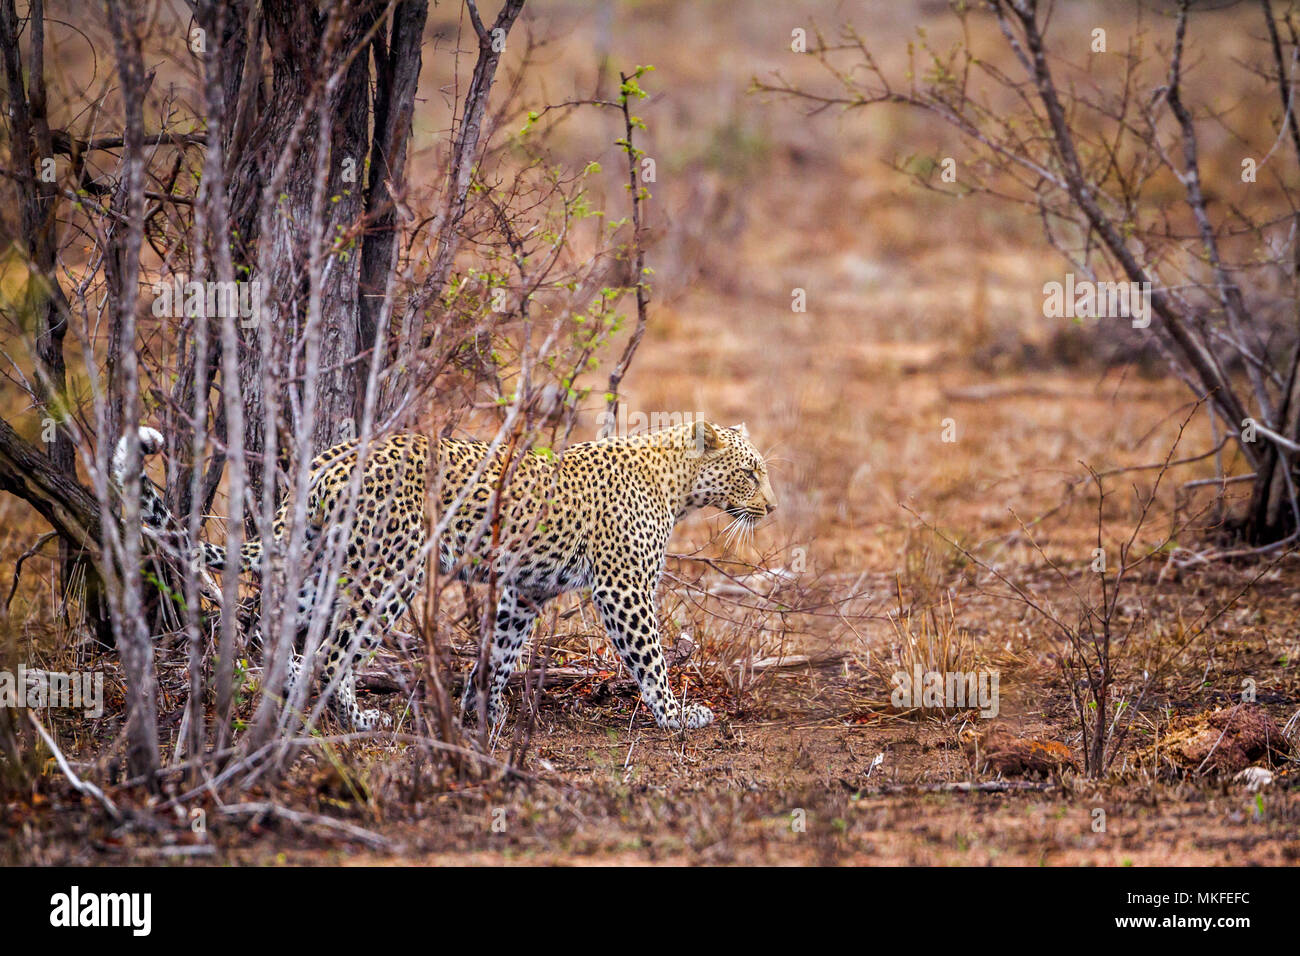 Leopard (Panthera pardus) in Yala national park, Sri Lanka - Stock Image